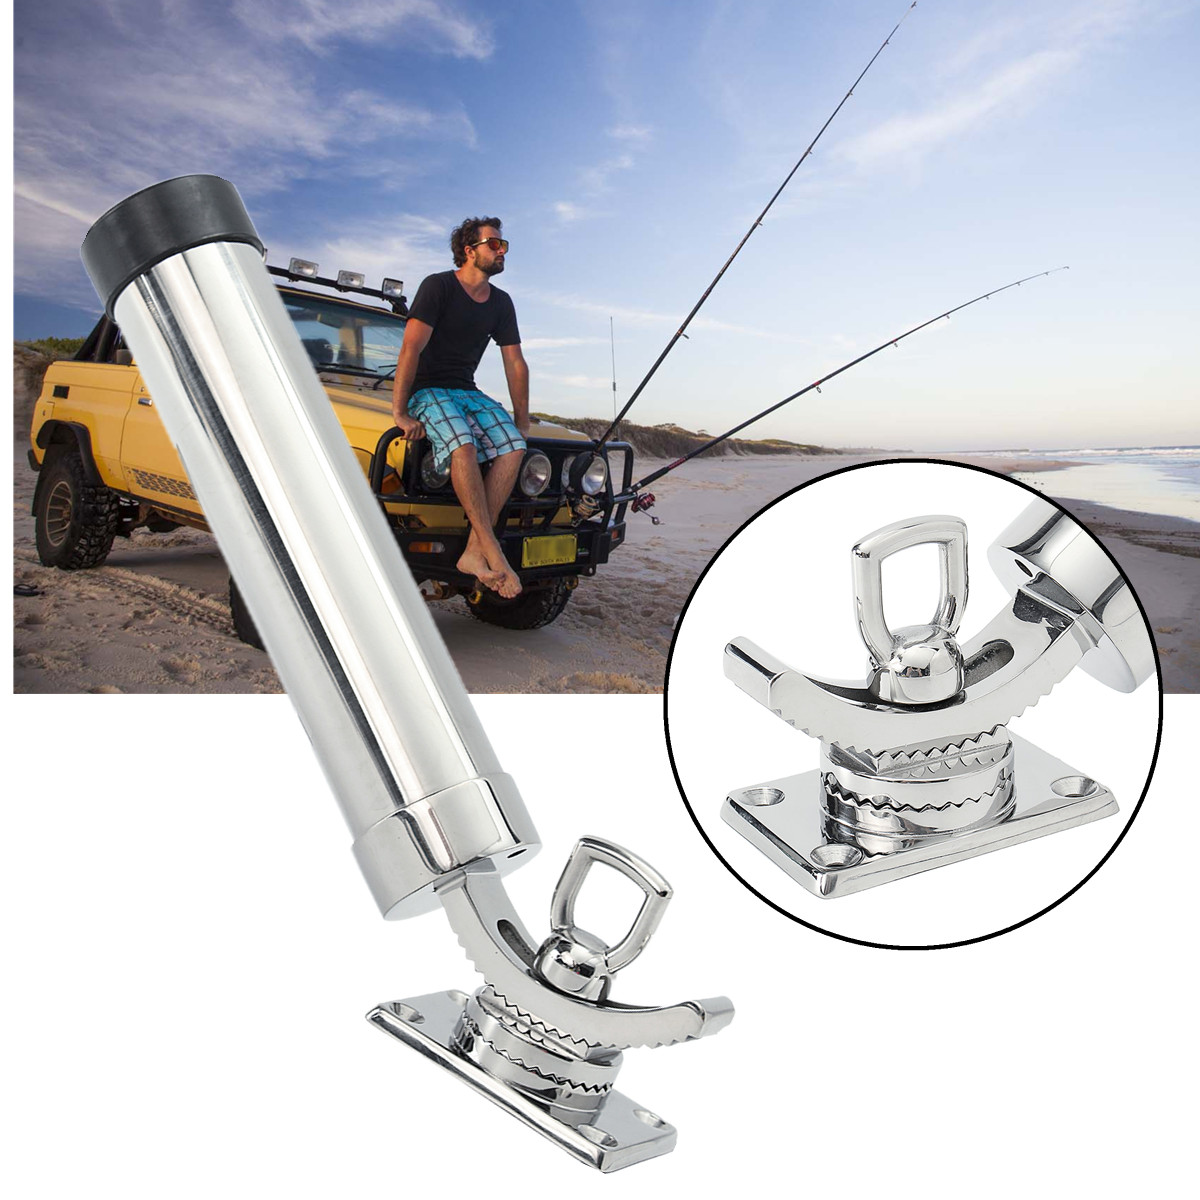 Fishing Adjustable Rod Holders 316 Stainless Steel Deck Mount For Boat Rod Pod fishing Tool 90 Degree Up-Down Adjustable DurableFishing Adjustable Rod Holders 316 Stainless Steel Deck Mount For Boat Rod Pod fishing Tool 90 Degree Up-Down Adjustable Durable